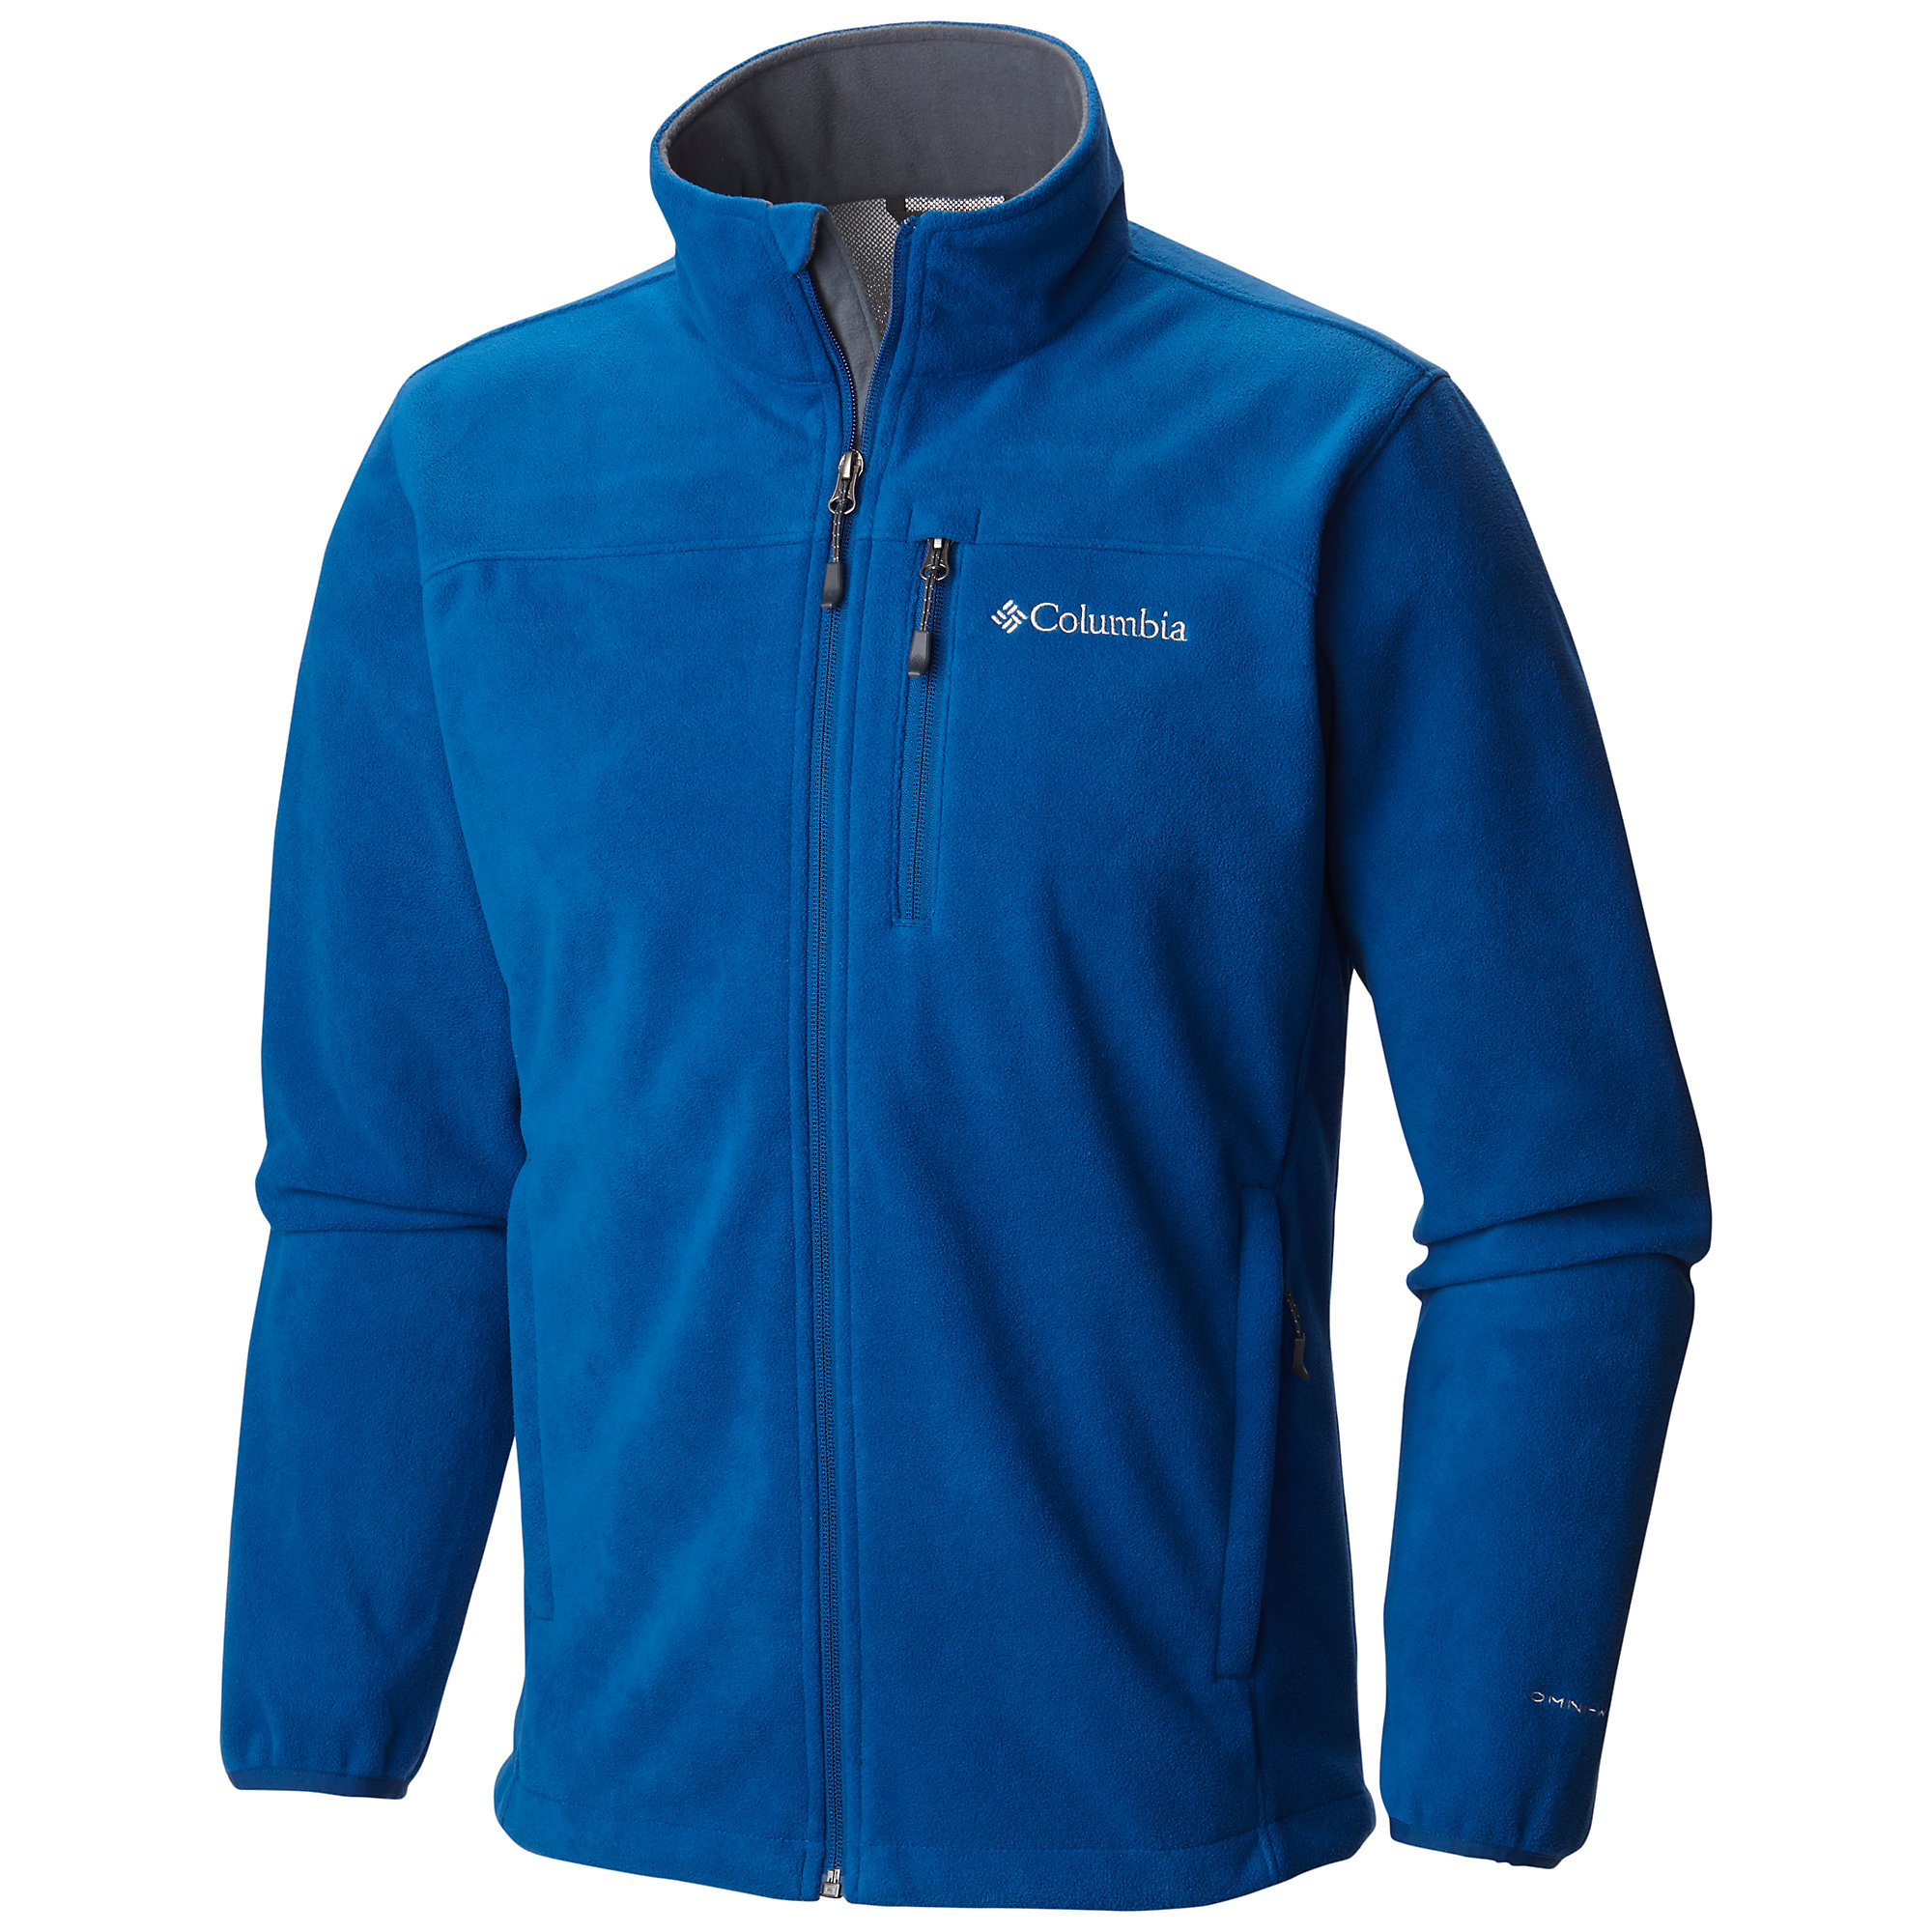 Columbia Wind Protector Jacket